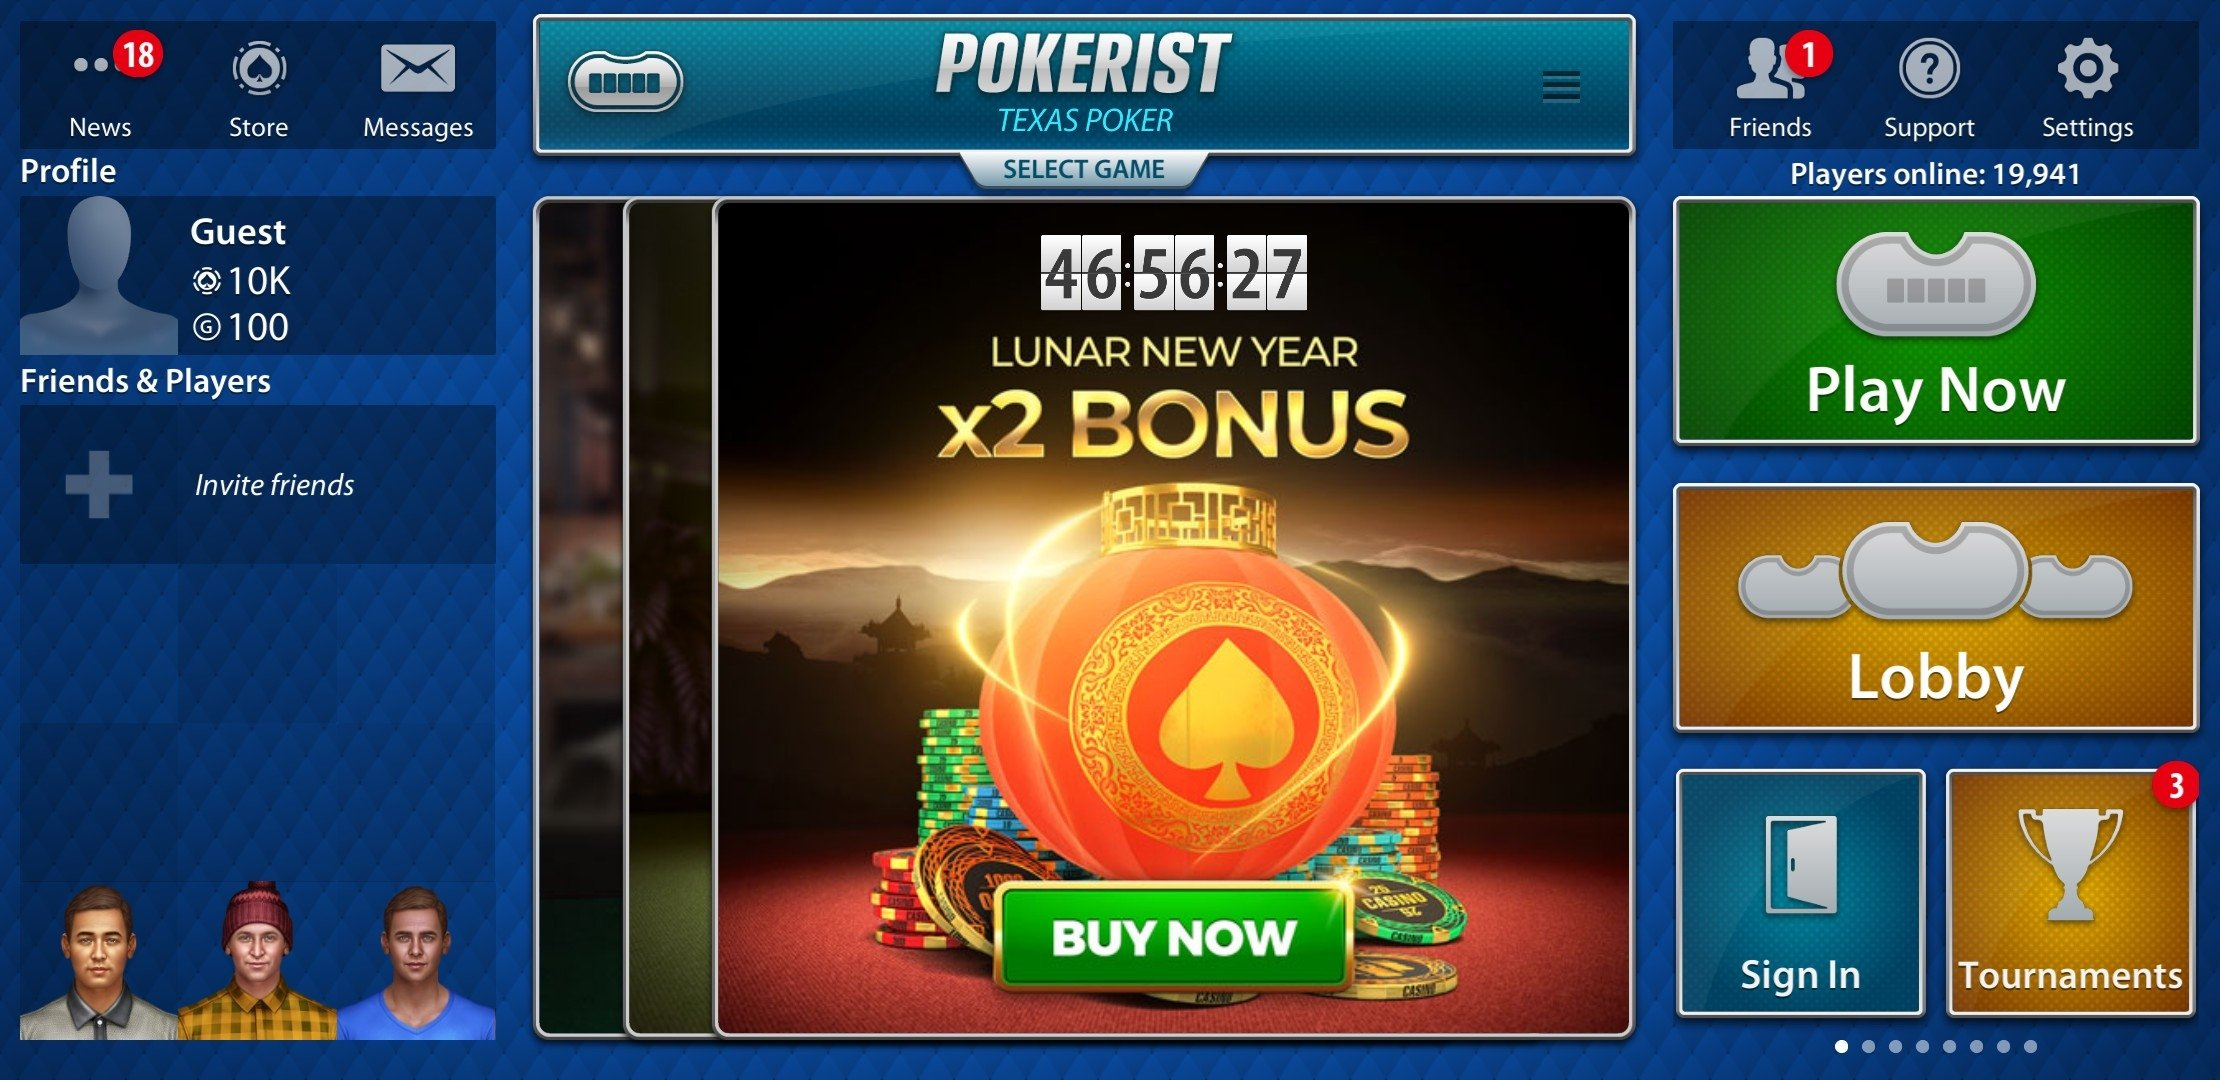 Pokerist 17 1 0 - Download for Android APK Free